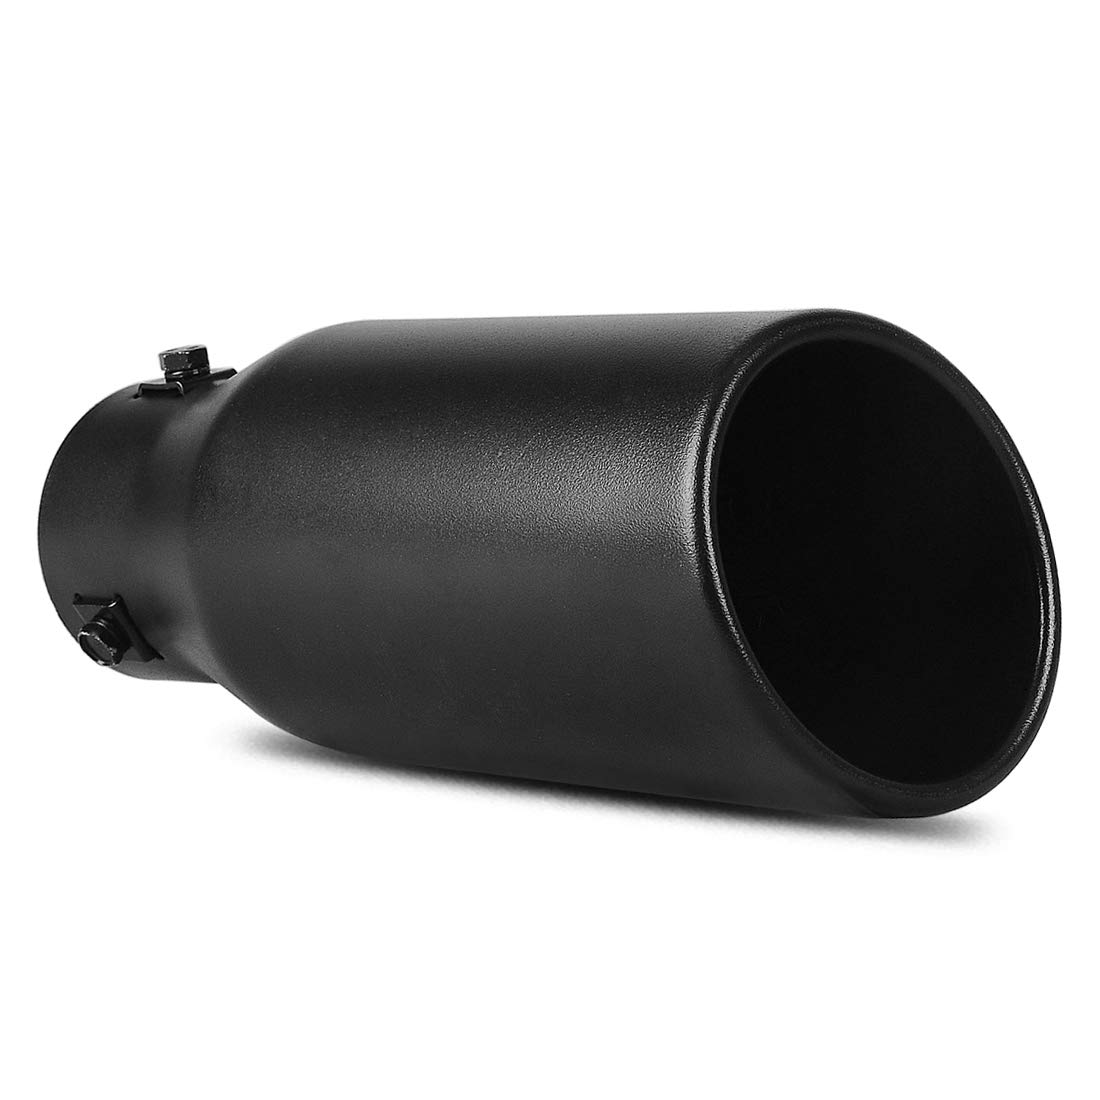 1.5-2.0 Inch Inlet Black Exhaust Tip AUTOSAVER88 Black Powder Coated Stainless Steel Exhaust Tip Bolt On Design.